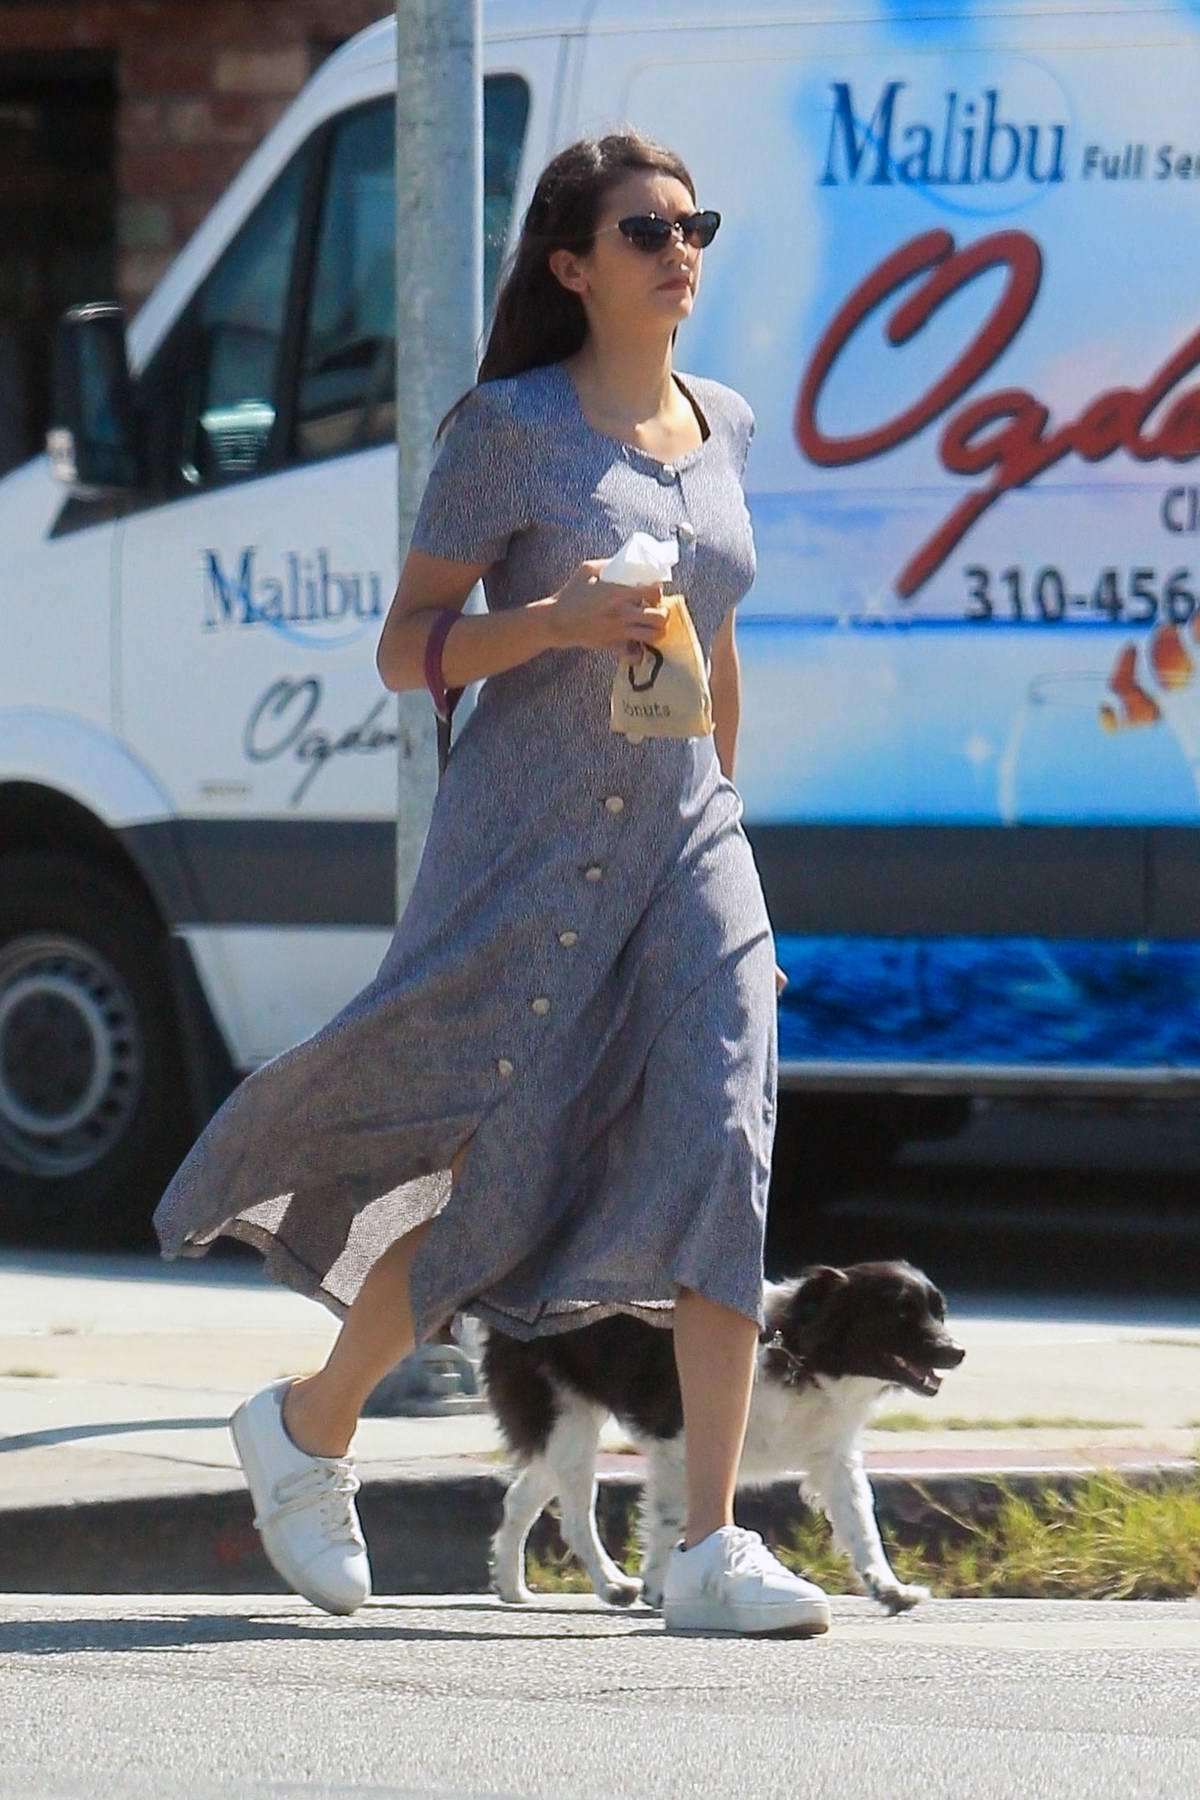 Nina Dobrev keeps it casual in a buttoned down dress during a coffee run with her dog in Hollywood, California